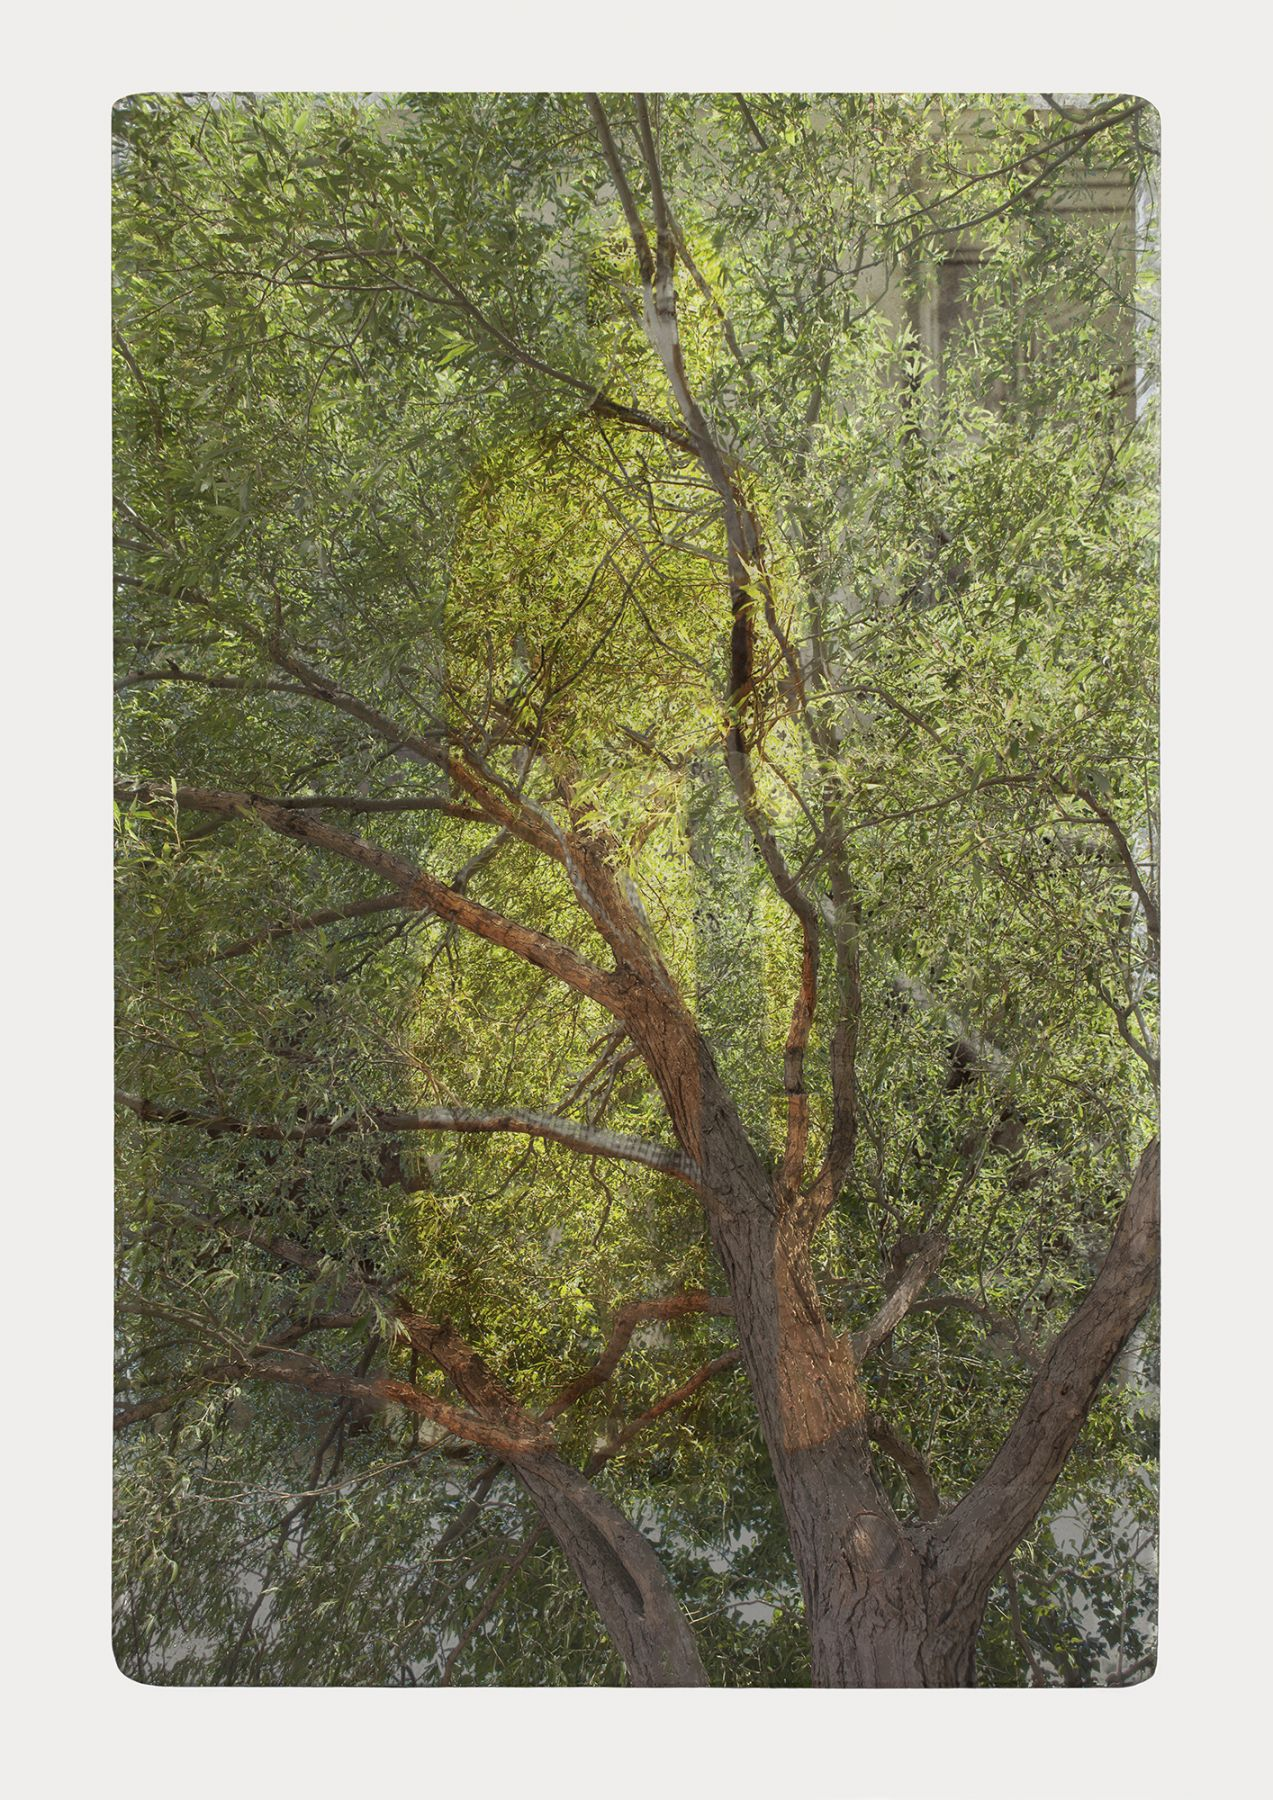 SARA ANGELUCCI | ARBORETUM (WOMAN/WILLOW) | PIGMENT PRINT ON ARCHIVAL PAPER | 31 X 44 INCHES | 2016